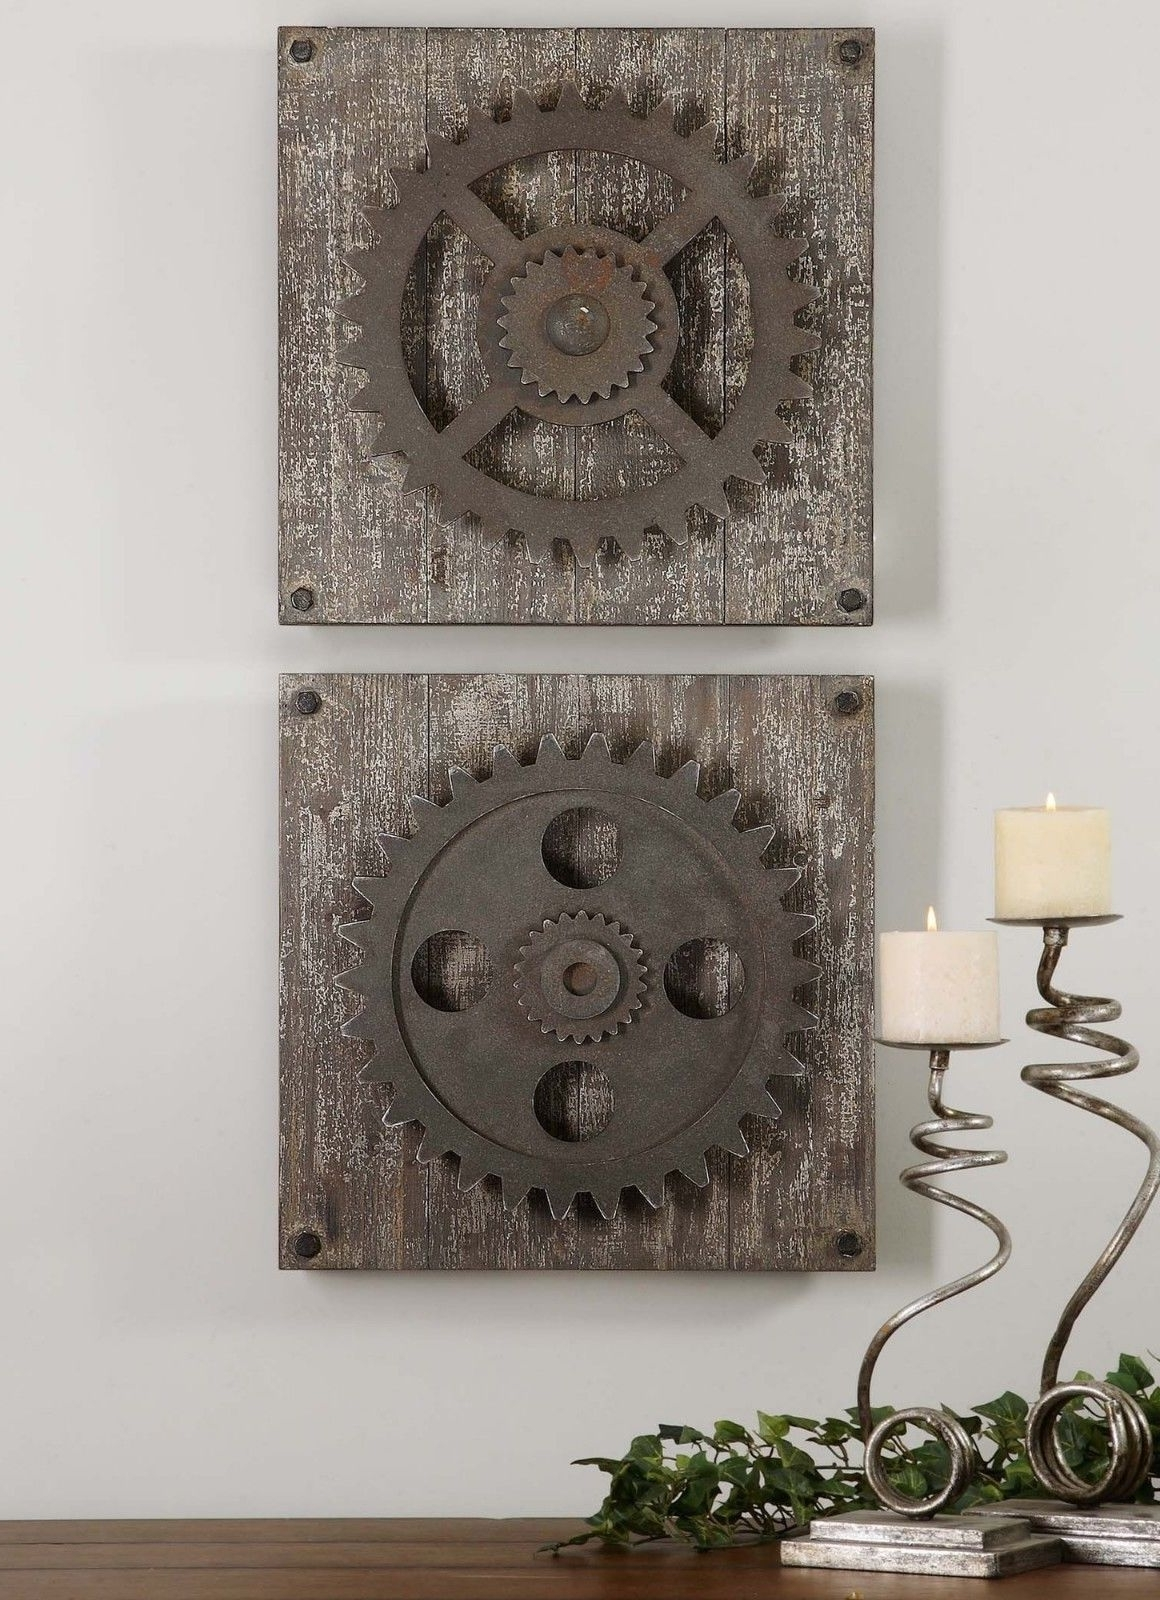 Industrial Wall Art Intended For Trendy Urban Industrial Loft Steampunk Decor Rusty Gears Cogs 3D Wall Art (View 4 of 15)